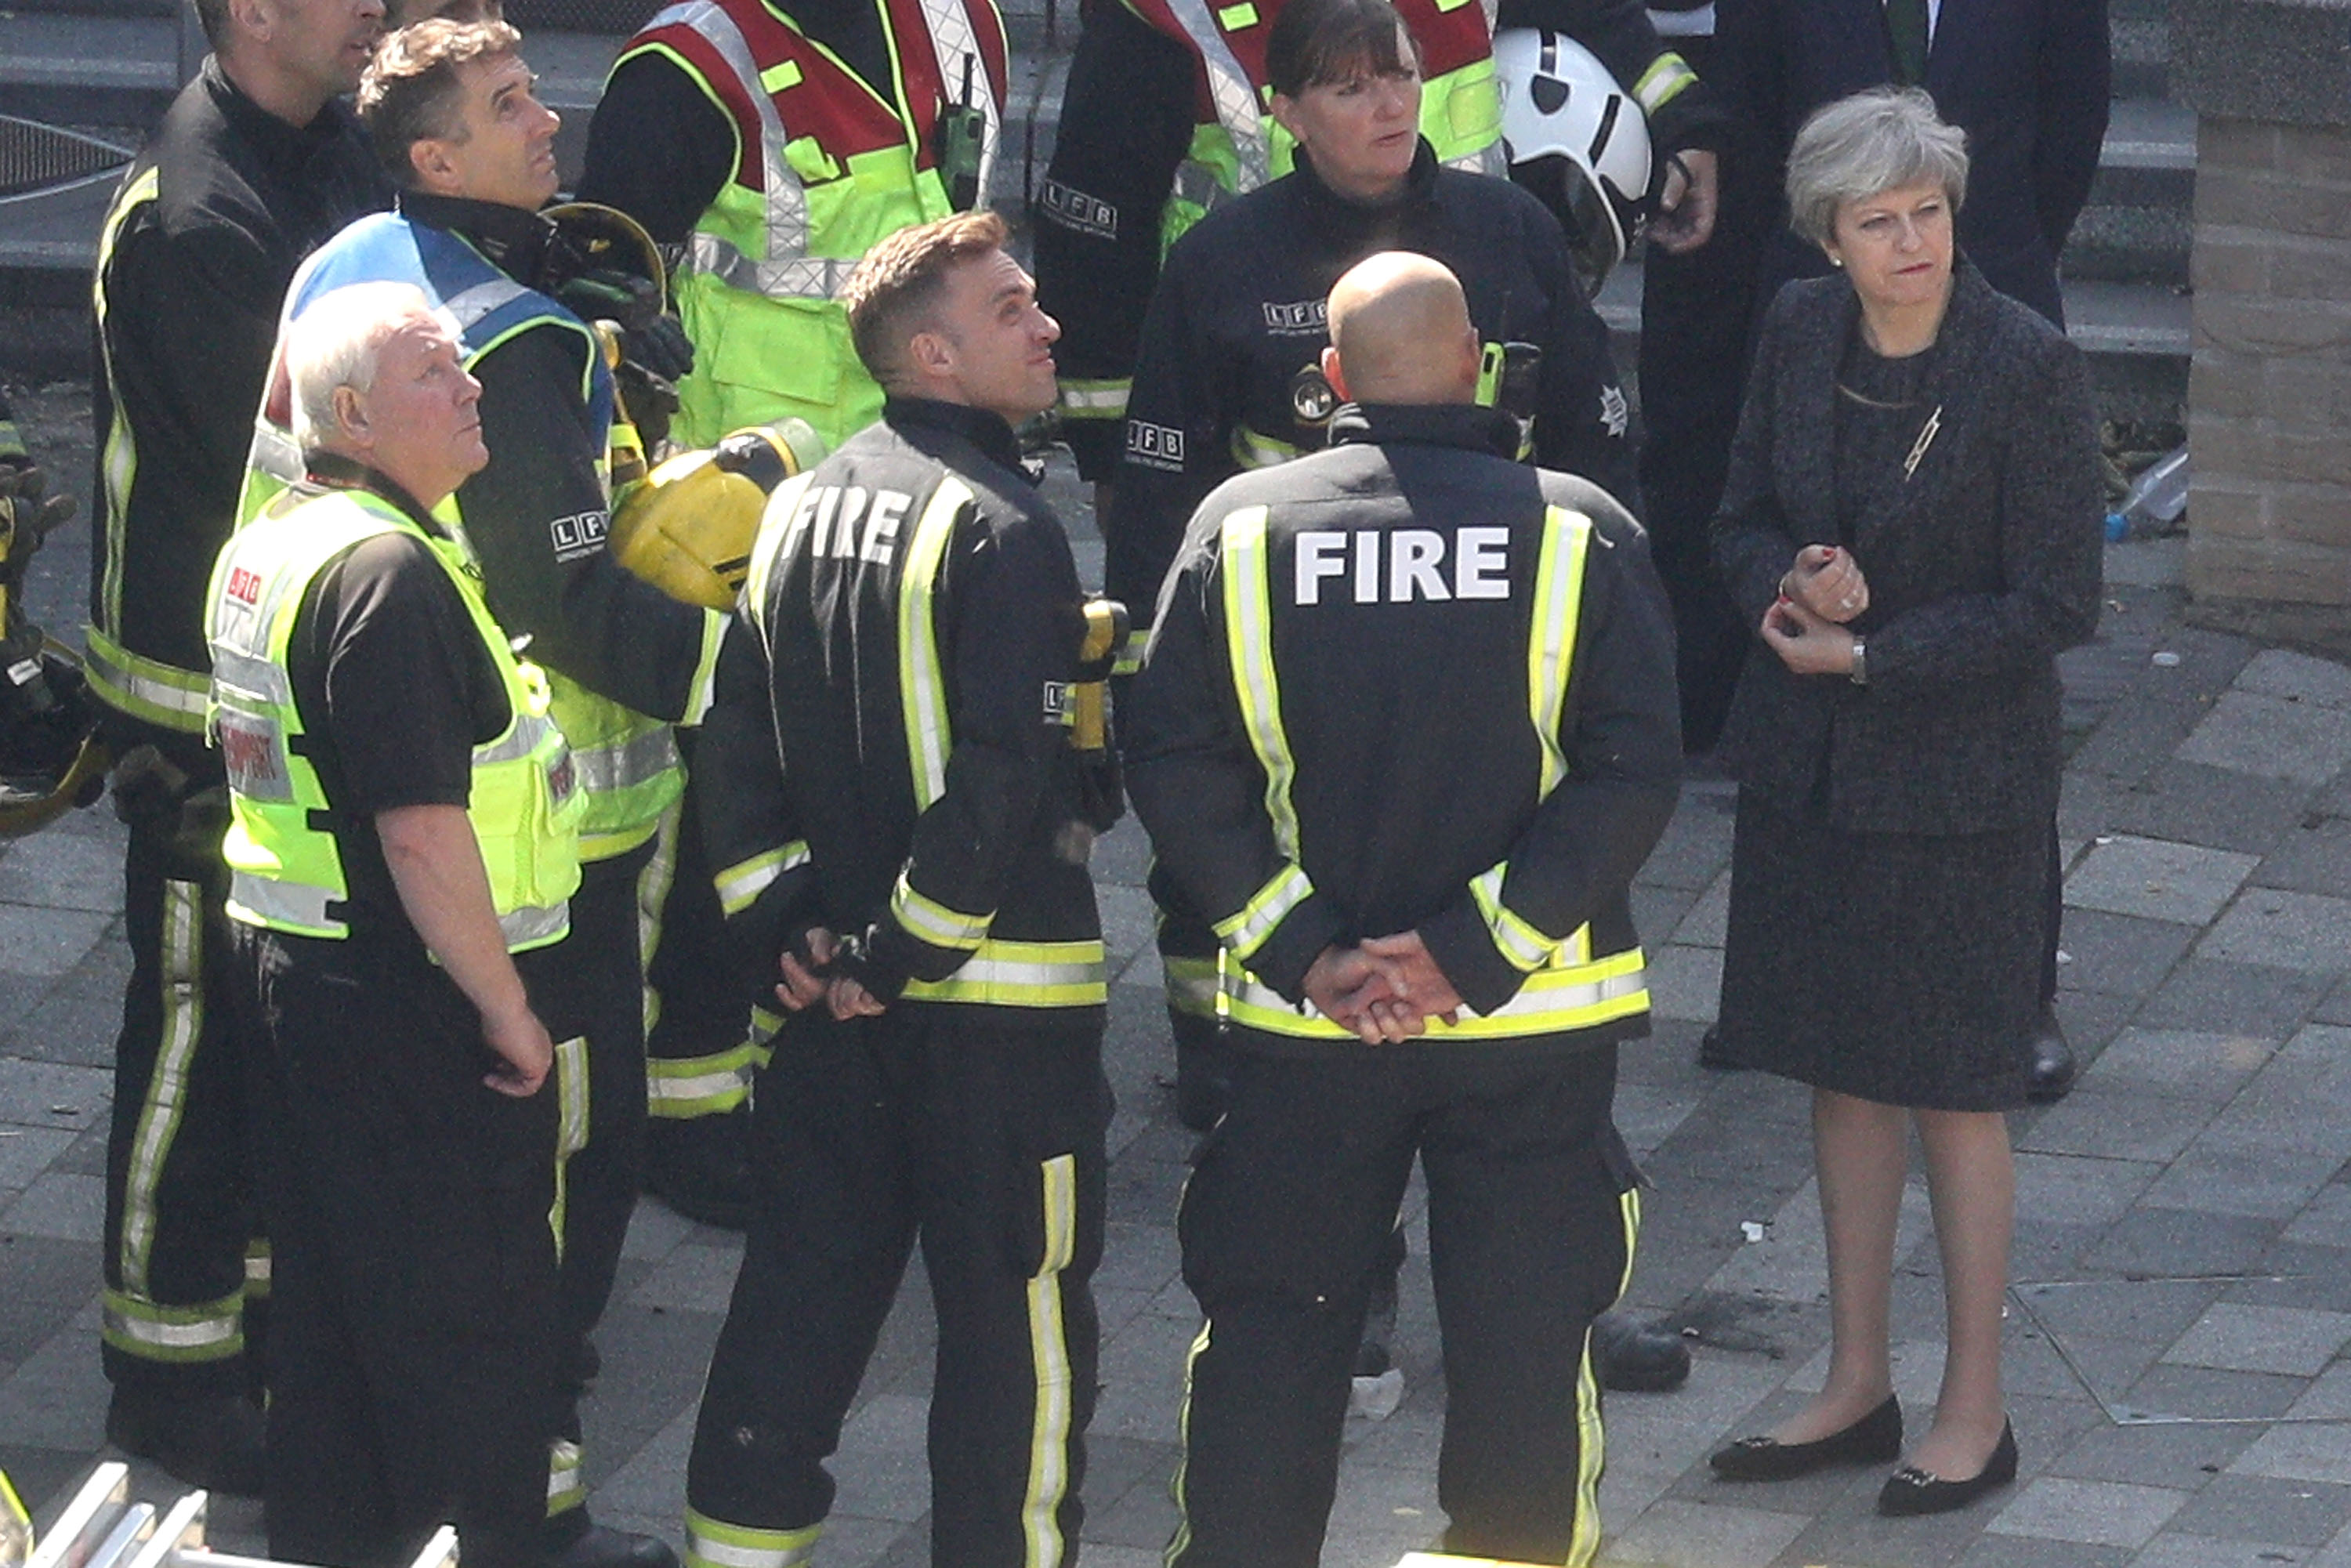 May meets with firefighters after the Grenfell Tower fire -- but her initial failure to meet survivors prompted criticism.